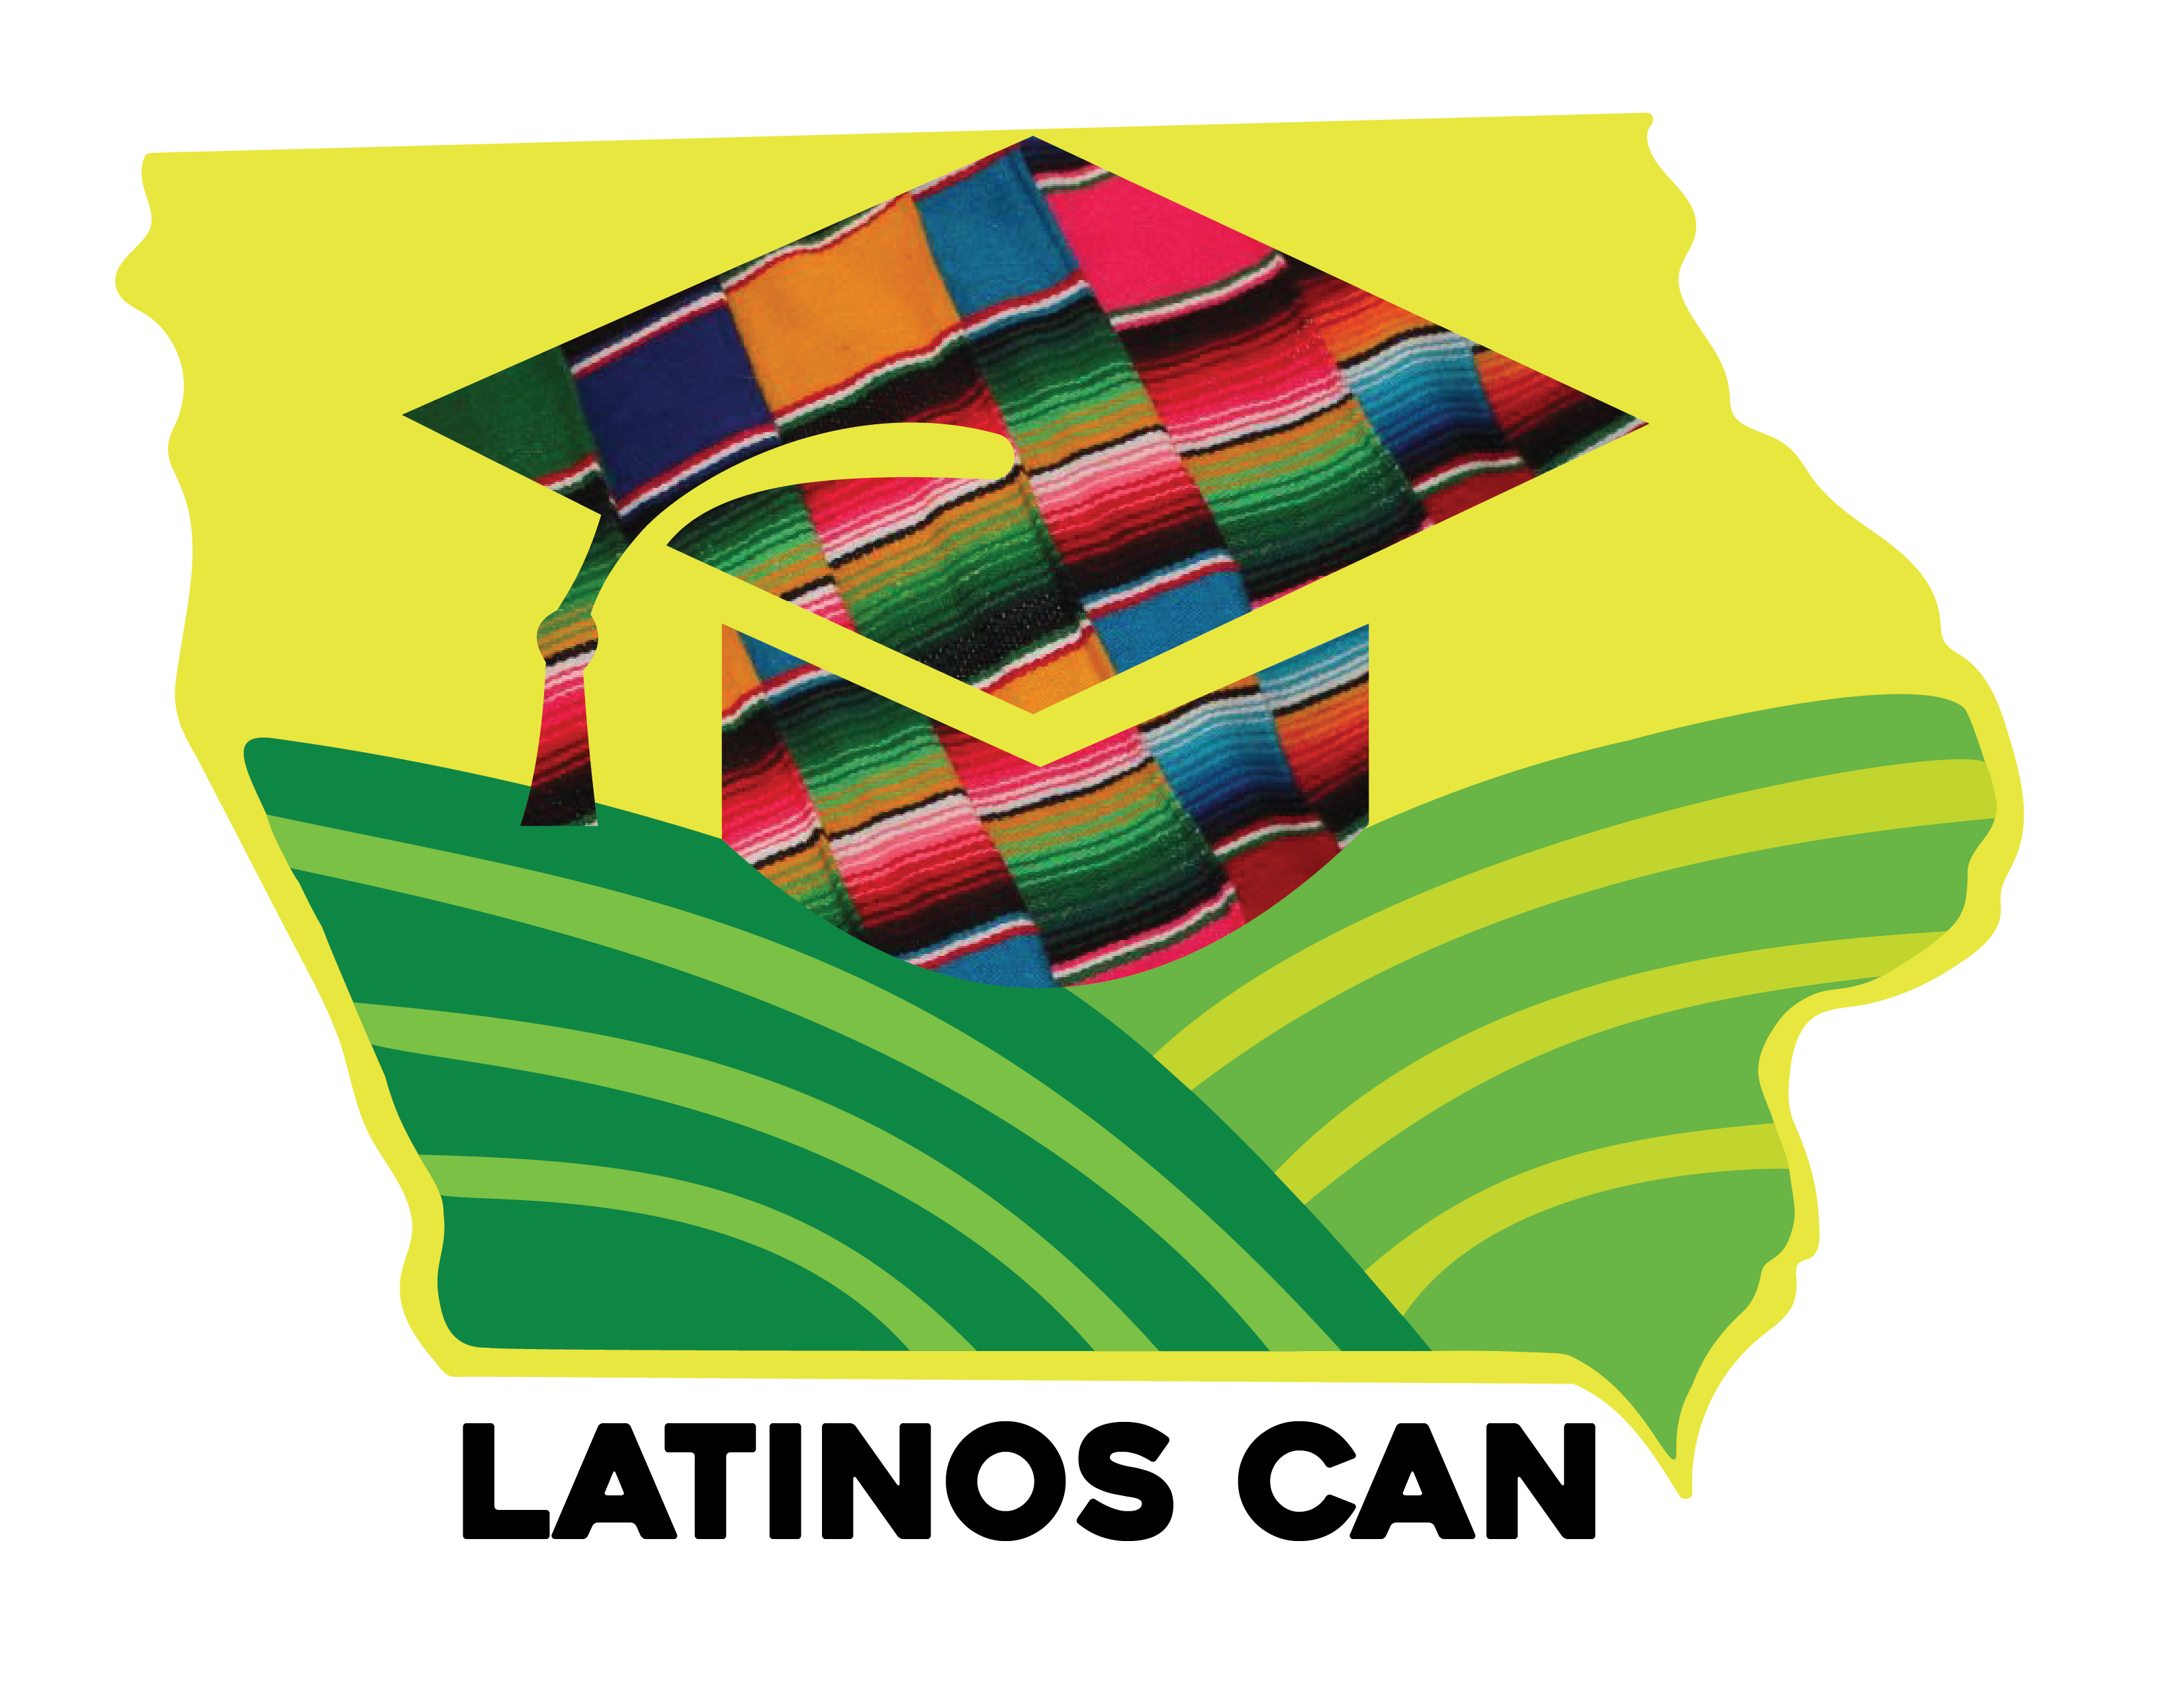 the state of Iowa in a lime color with two green fields and a graduation cap with a multi-colored serape pattern. The bottom of the state has the name Latino Can in all uppercase black letters.